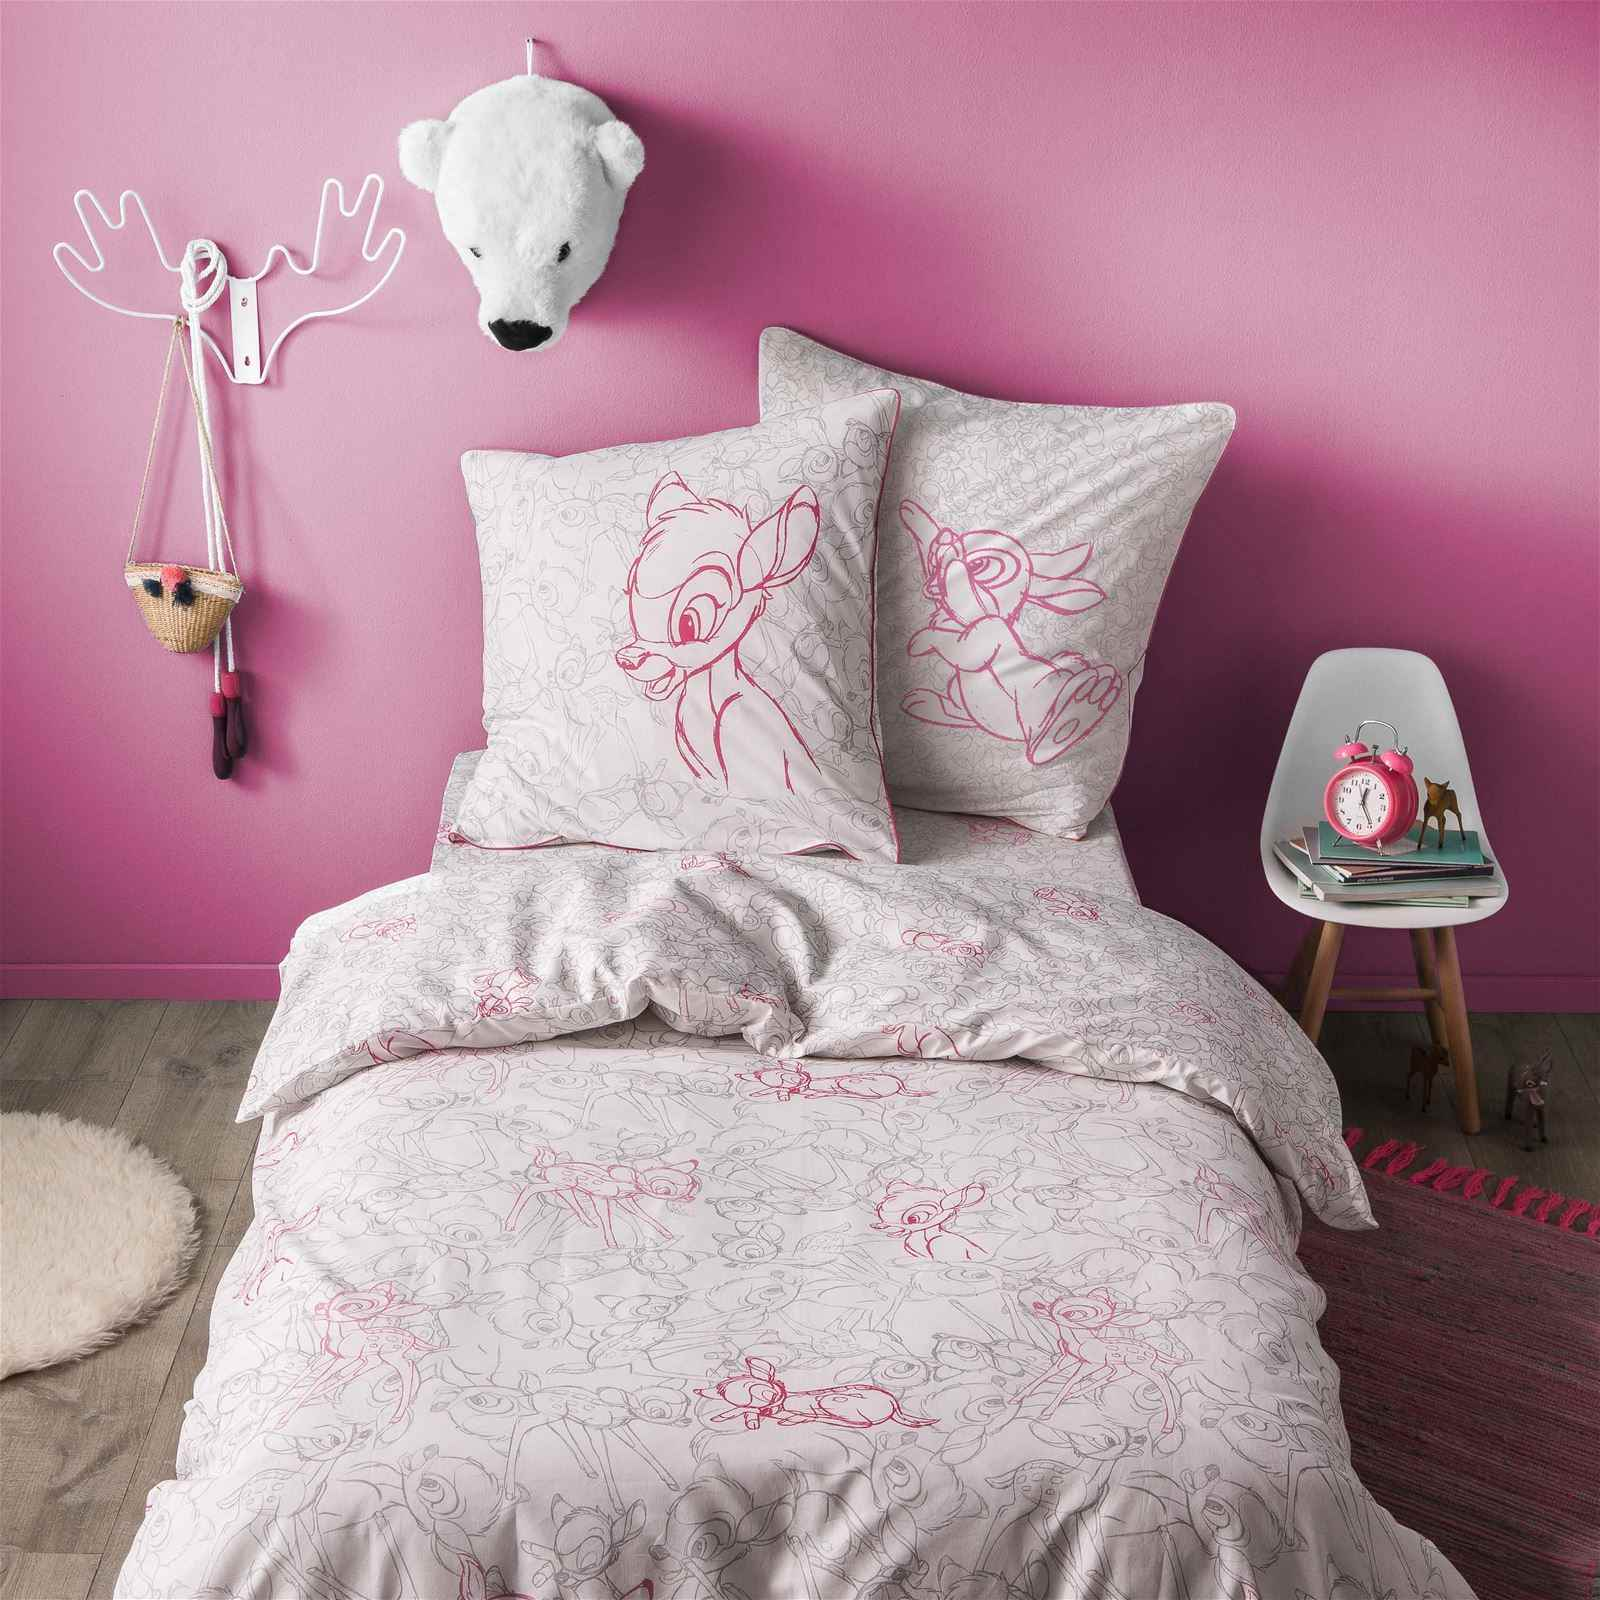 blanc cerise bambi cache cache drap housse blanc brandalley. Black Bedroom Furniture Sets. Home Design Ideas